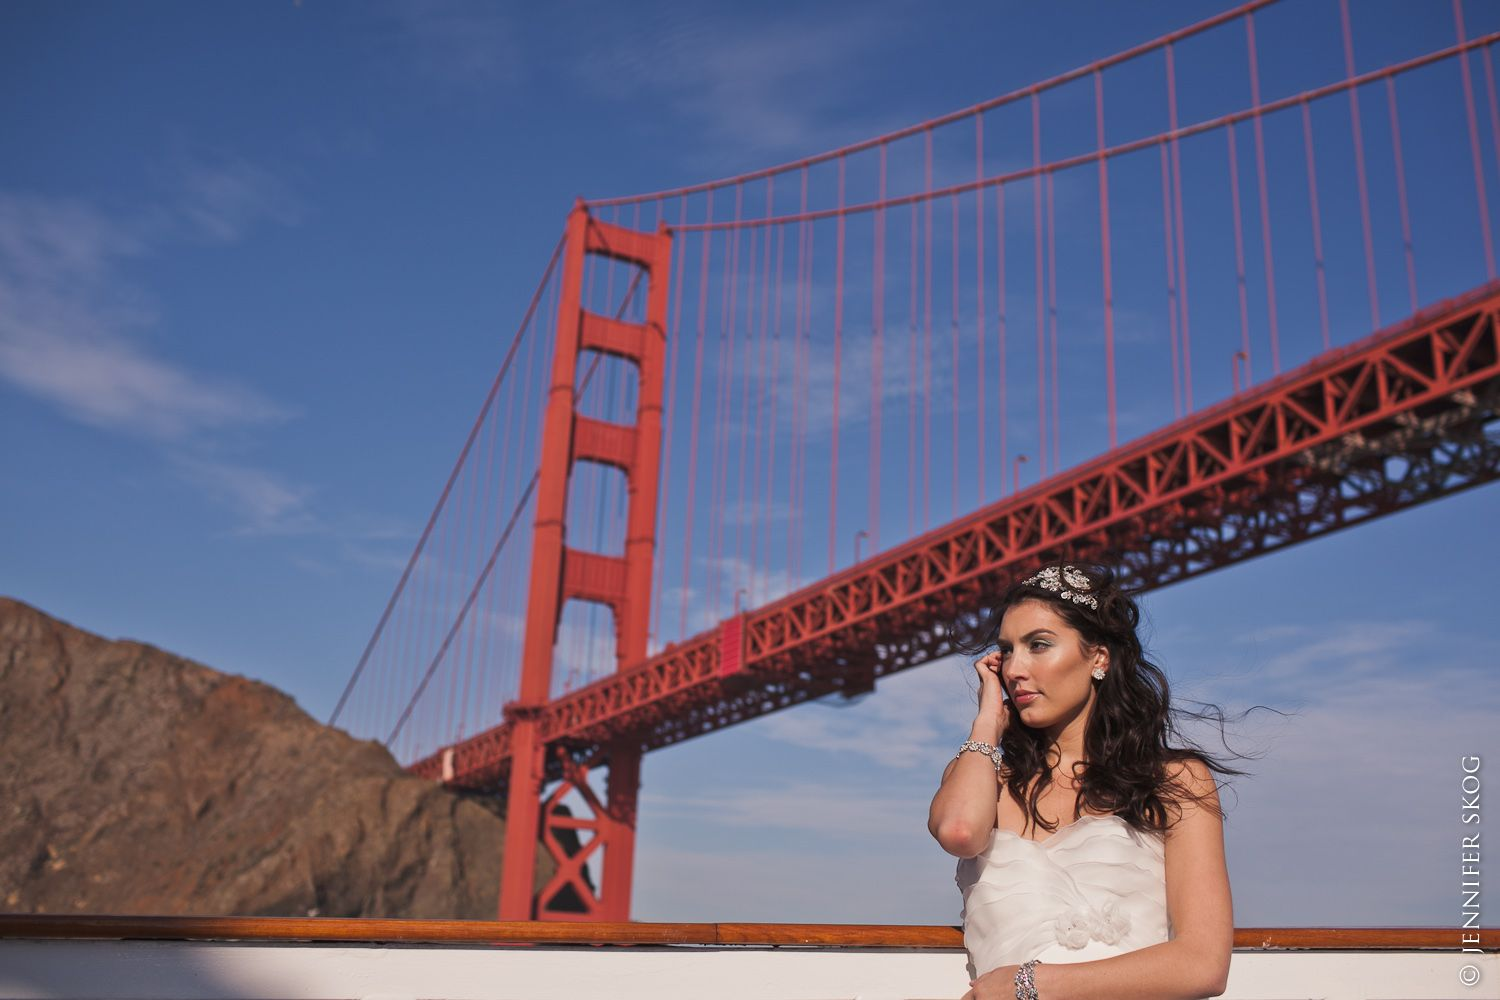 A wedding under the Golden Gate Bridge what could be